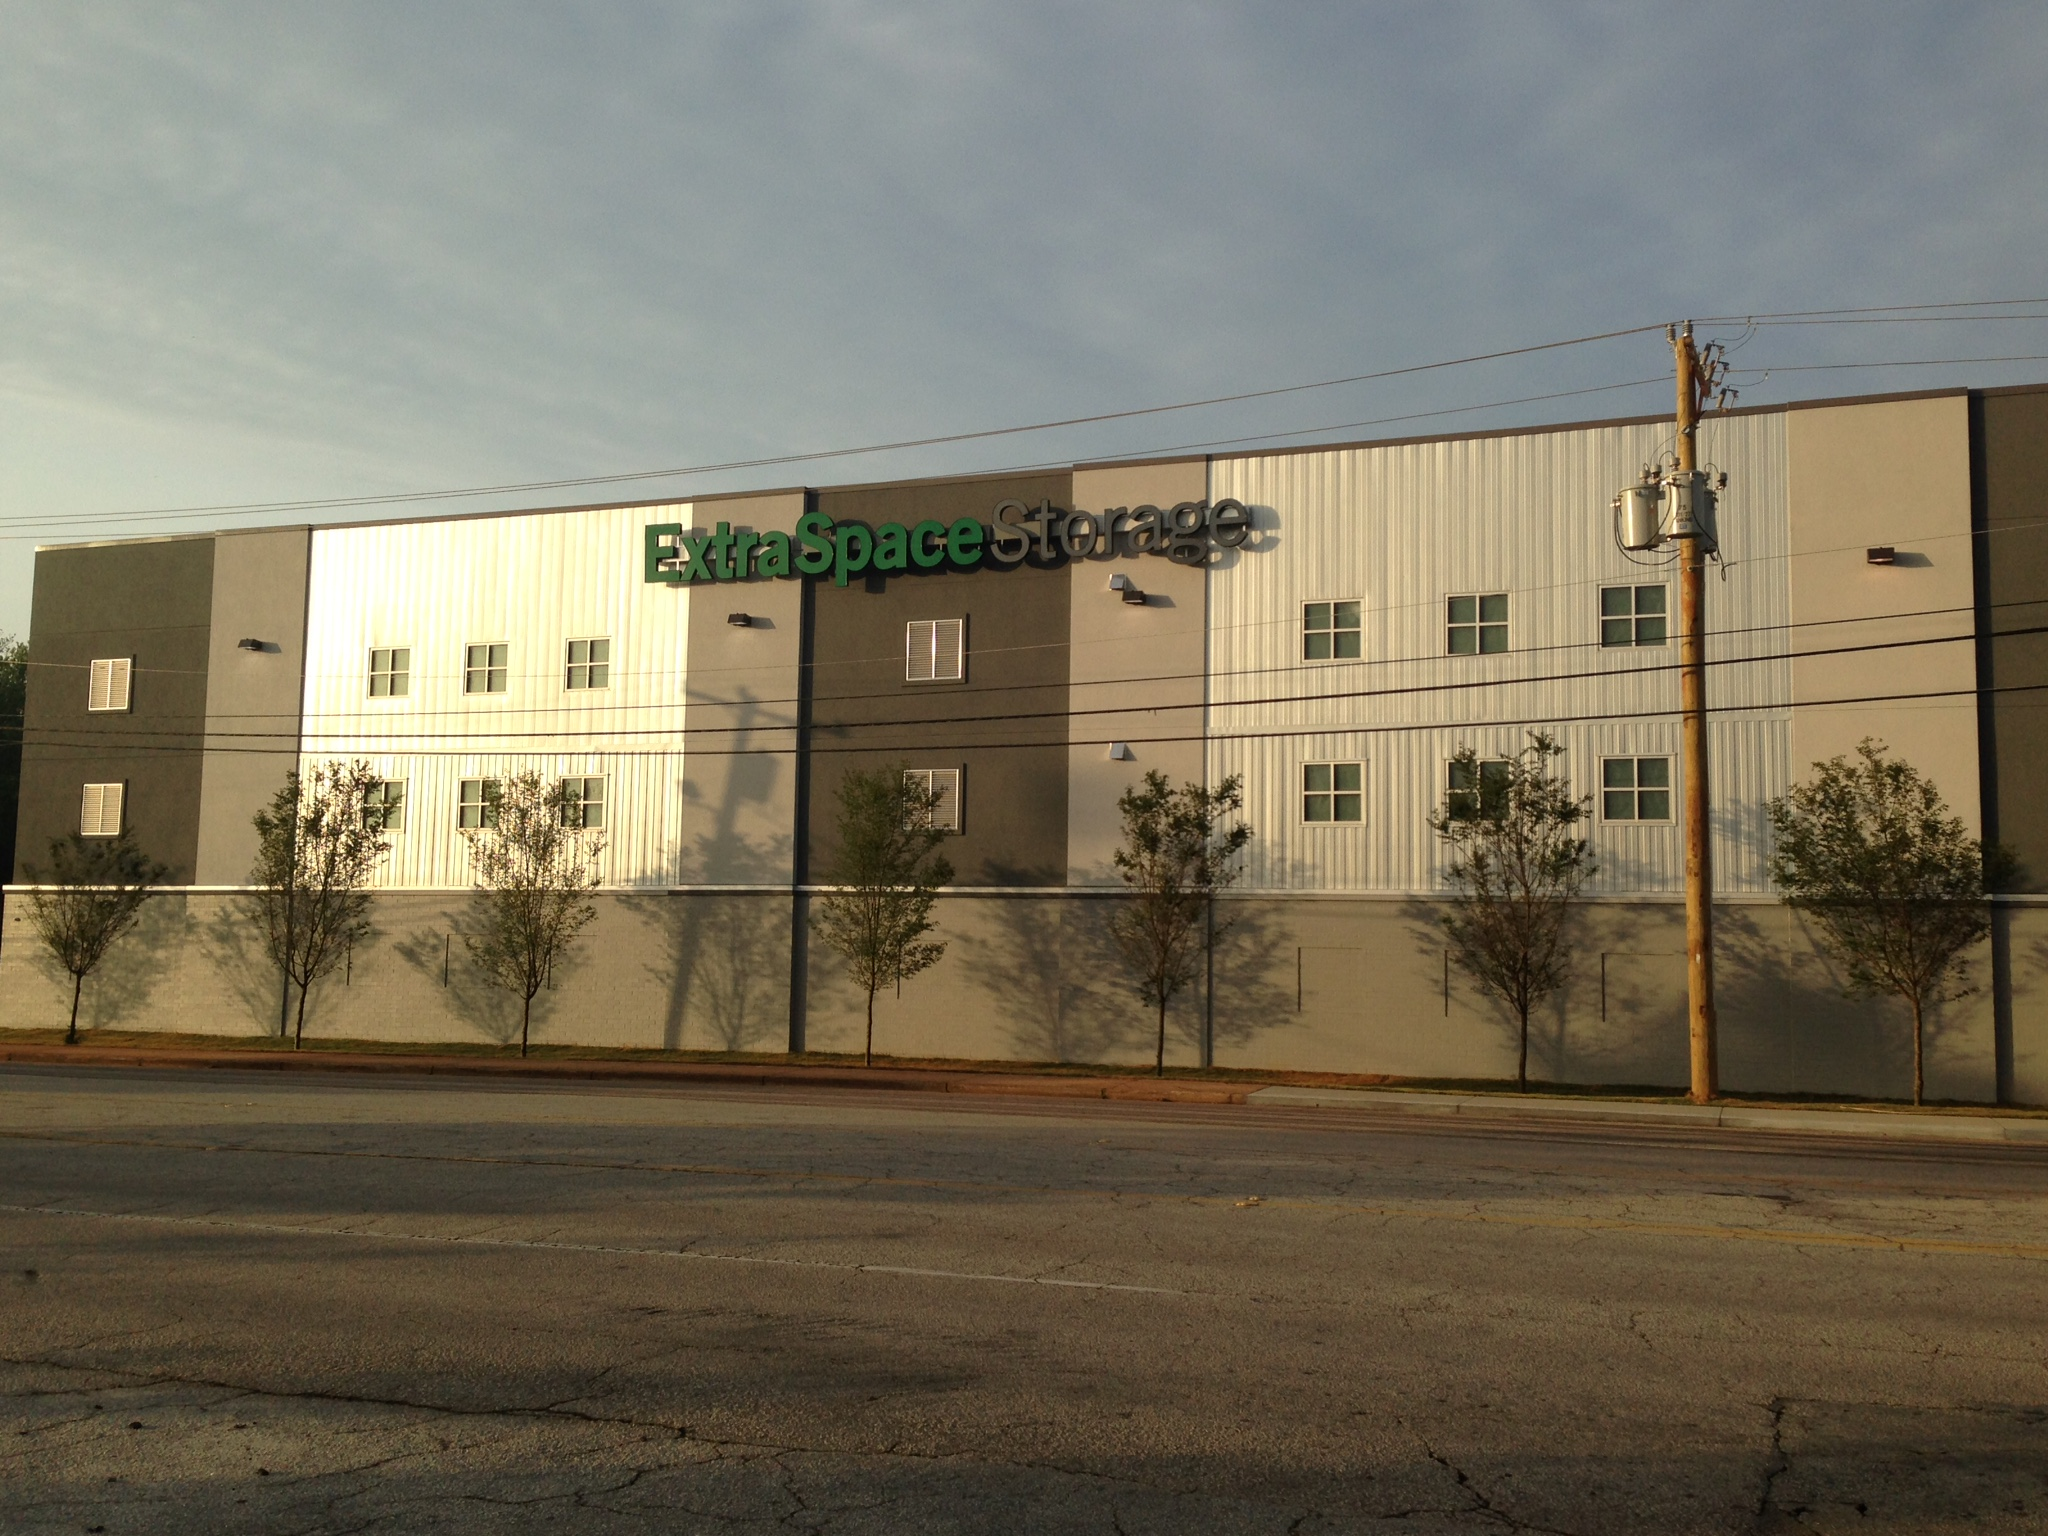 Dunbar Street Self Storage - Greenville, SC